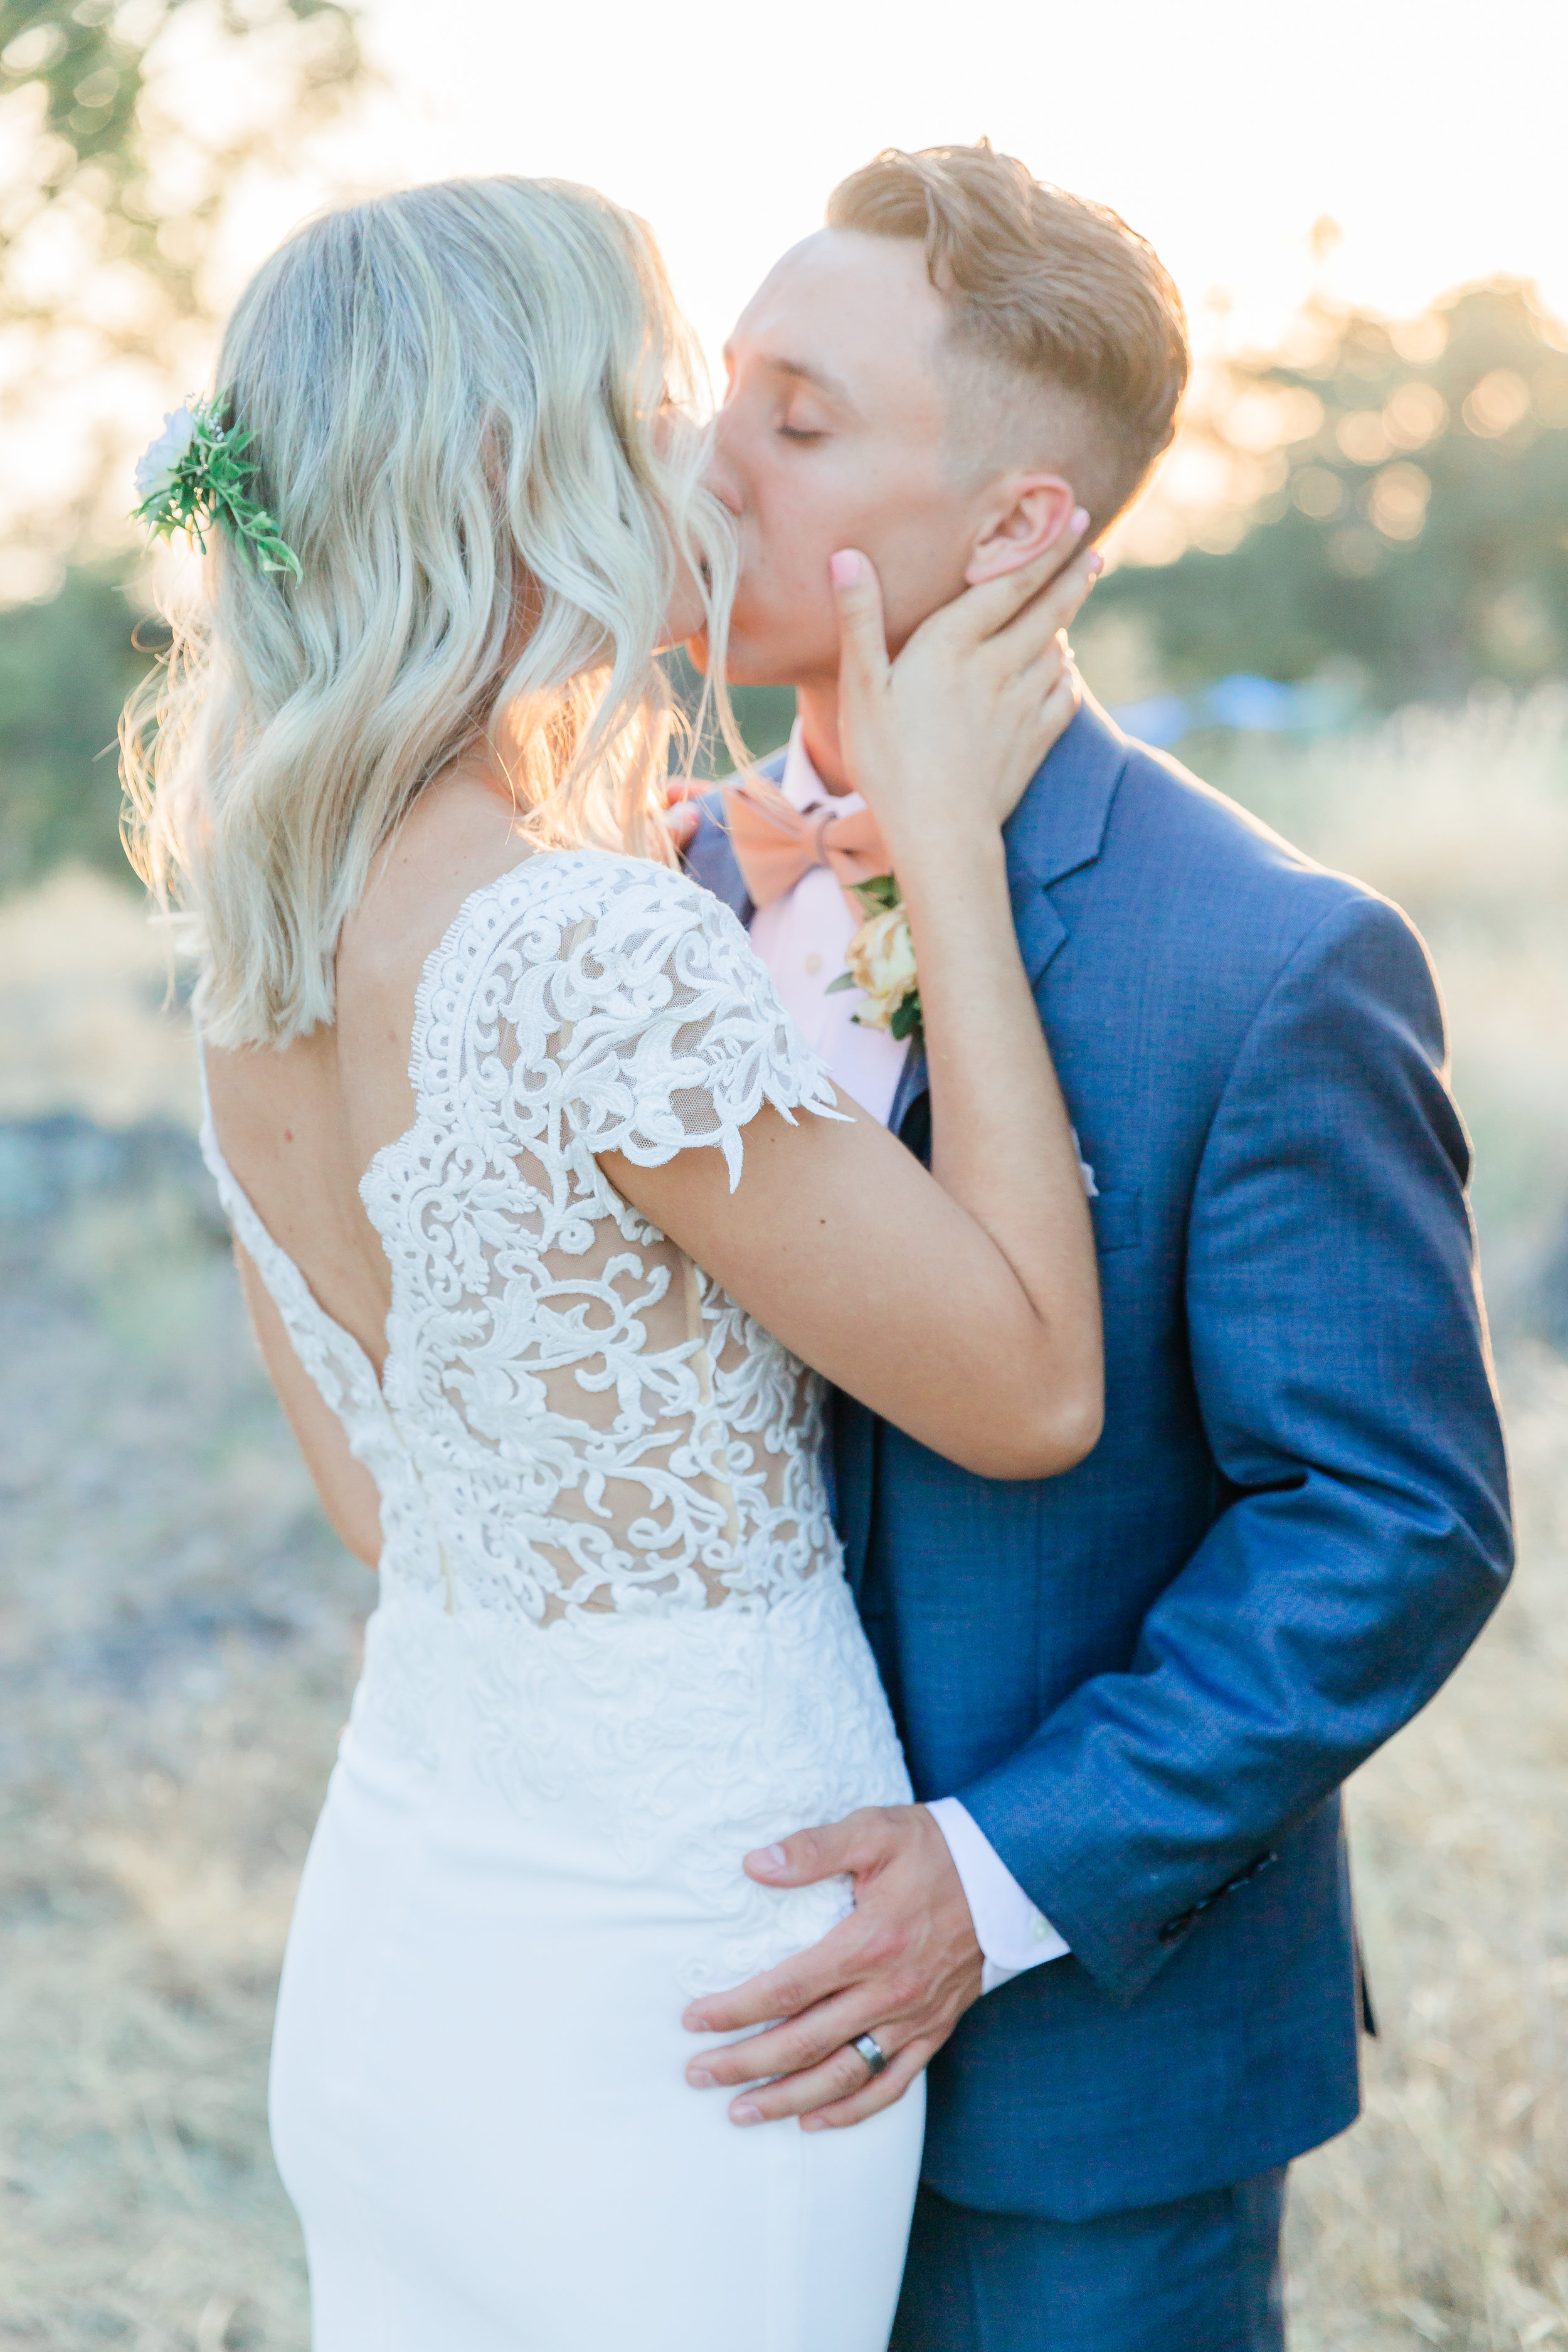 Kaitlynn and Colby - Married - Sneaks - Lauren Alisse Photography-104.jpg